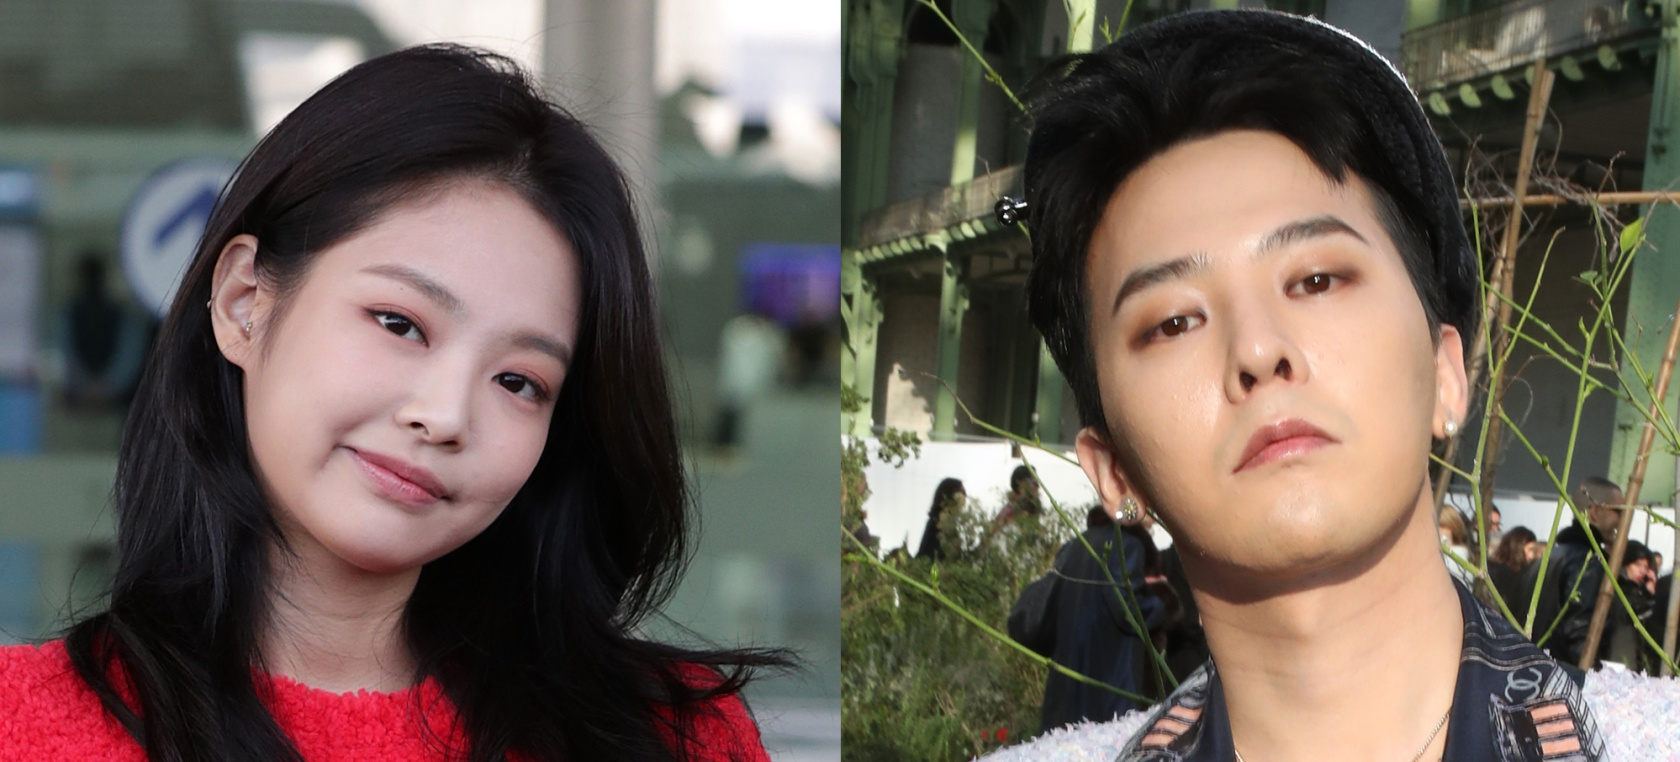 Jennie (BLACKPINK) y G-Dragon (BIGBANG): ¿son novios?